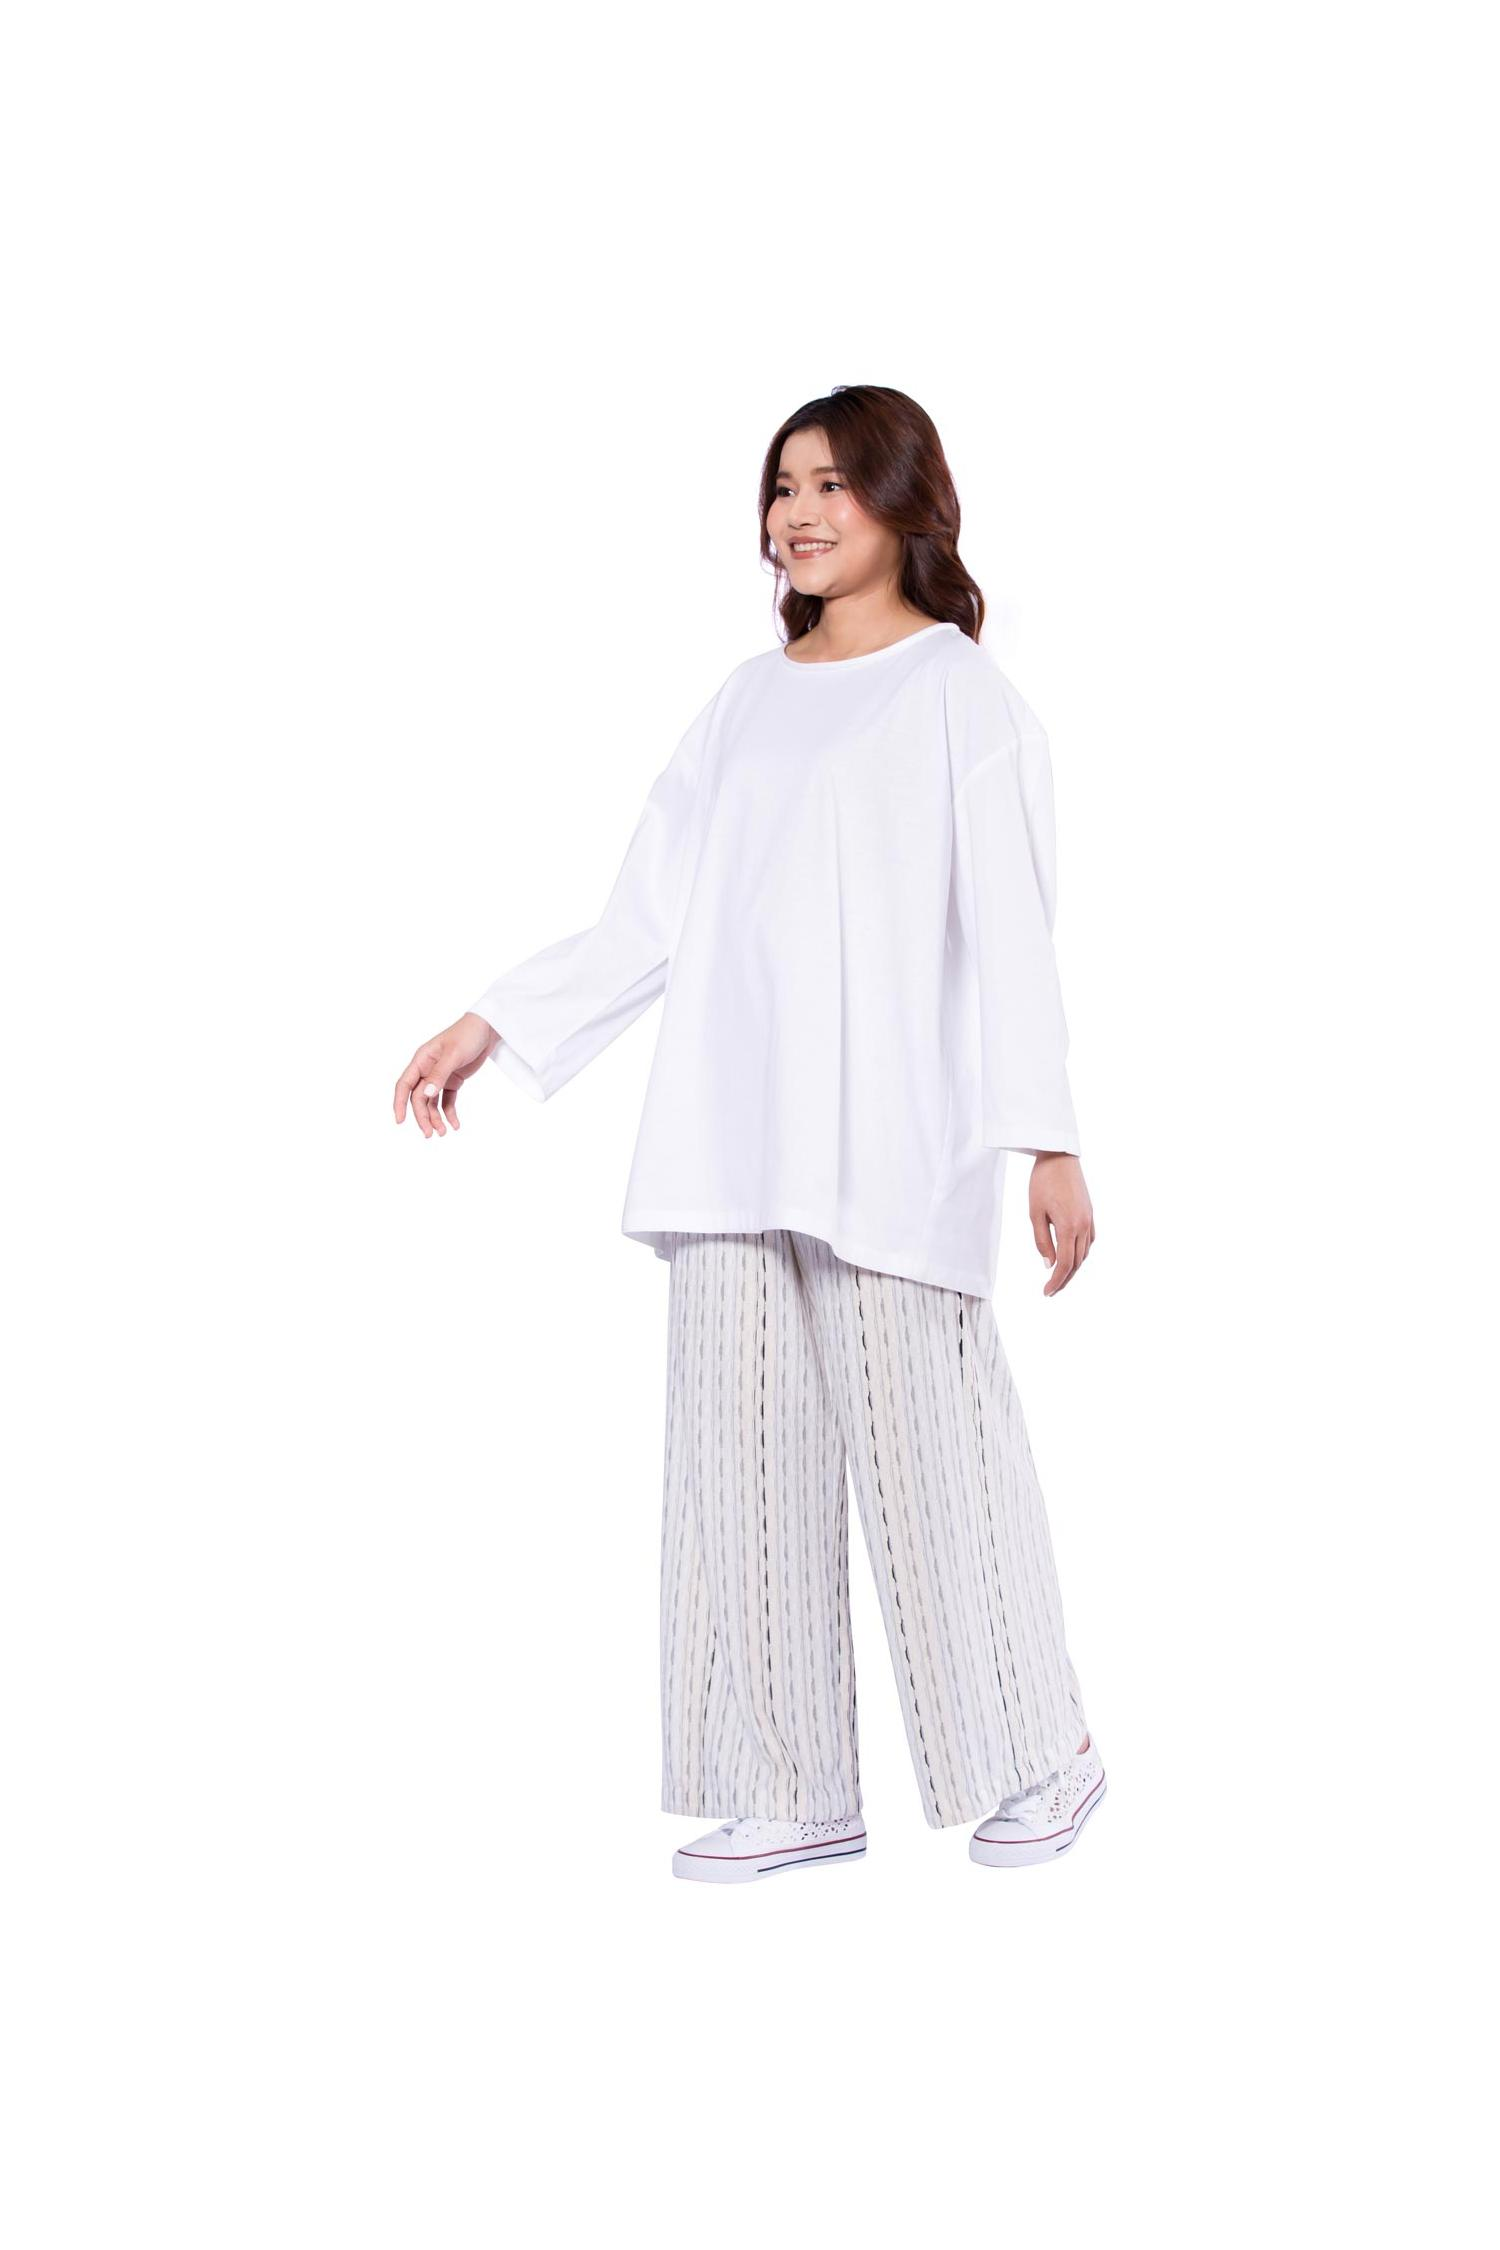 Relaxed fit white cotton top